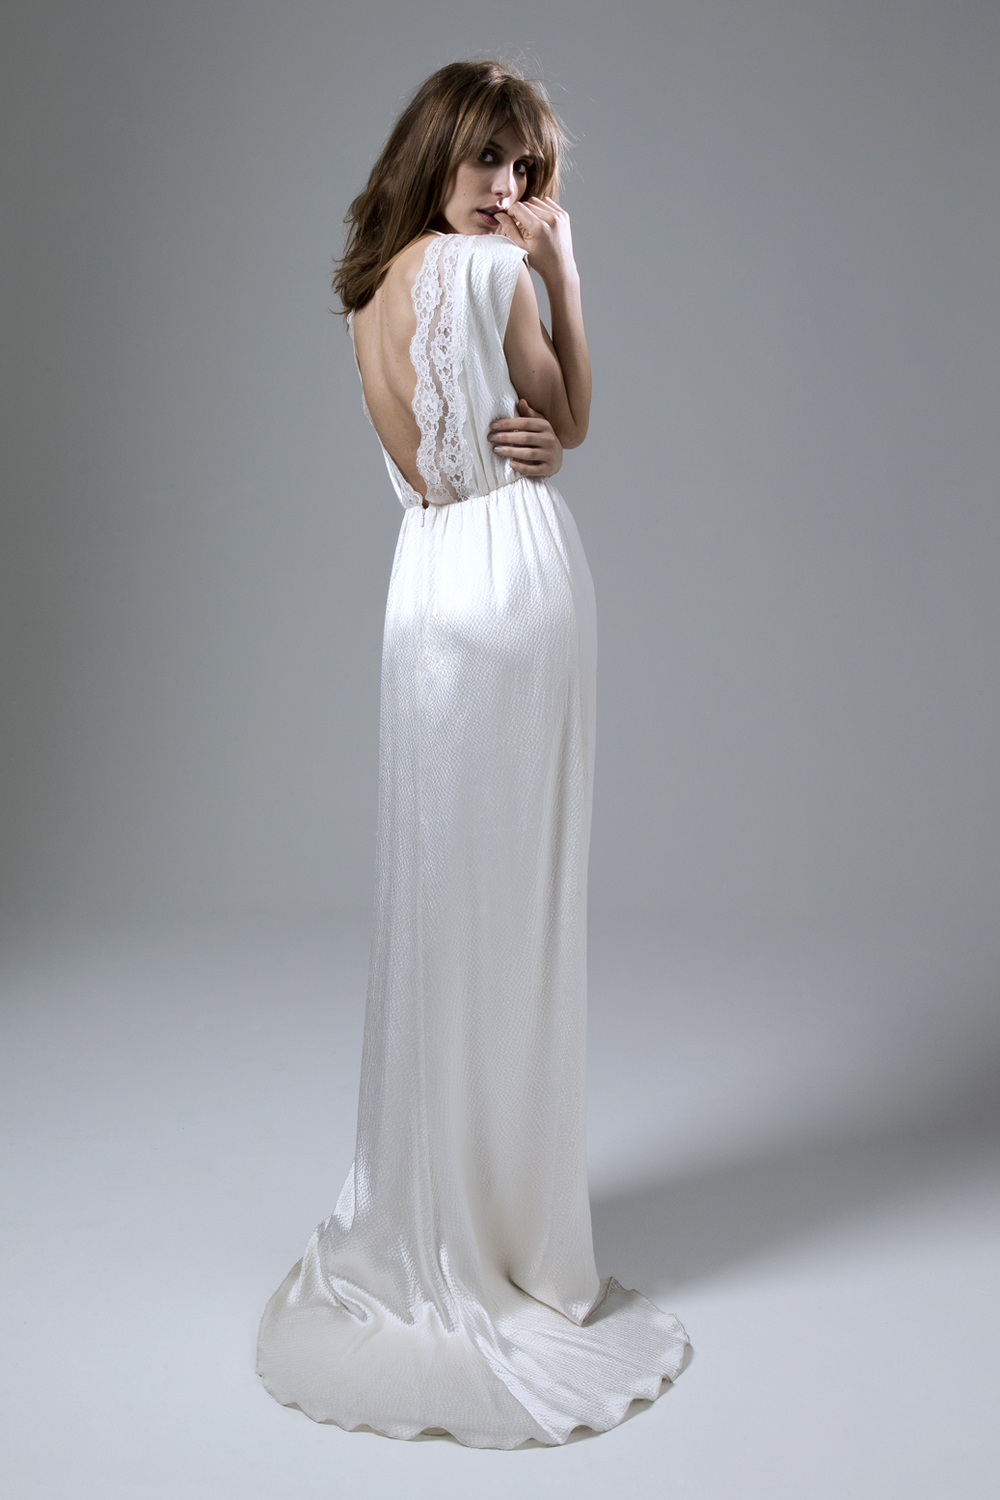 BACK VIEW OF HENNIE DRESS IN HAMMERED SILK AND FRENCH LACE TRIM WEDDING DRESS BY HALFPENNY LONDON